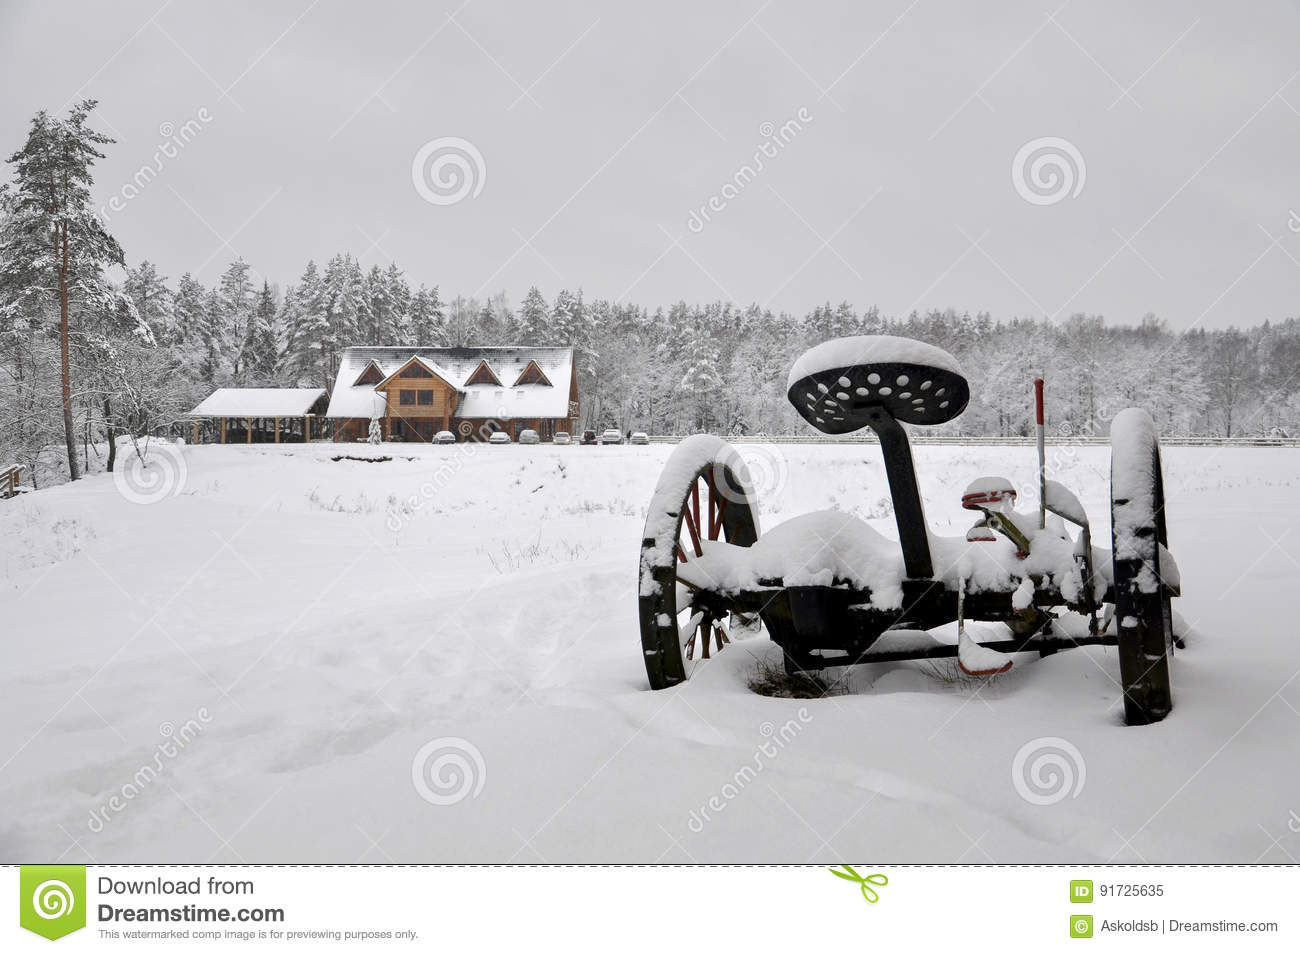 Cold snowy winter landscape of rural homes.